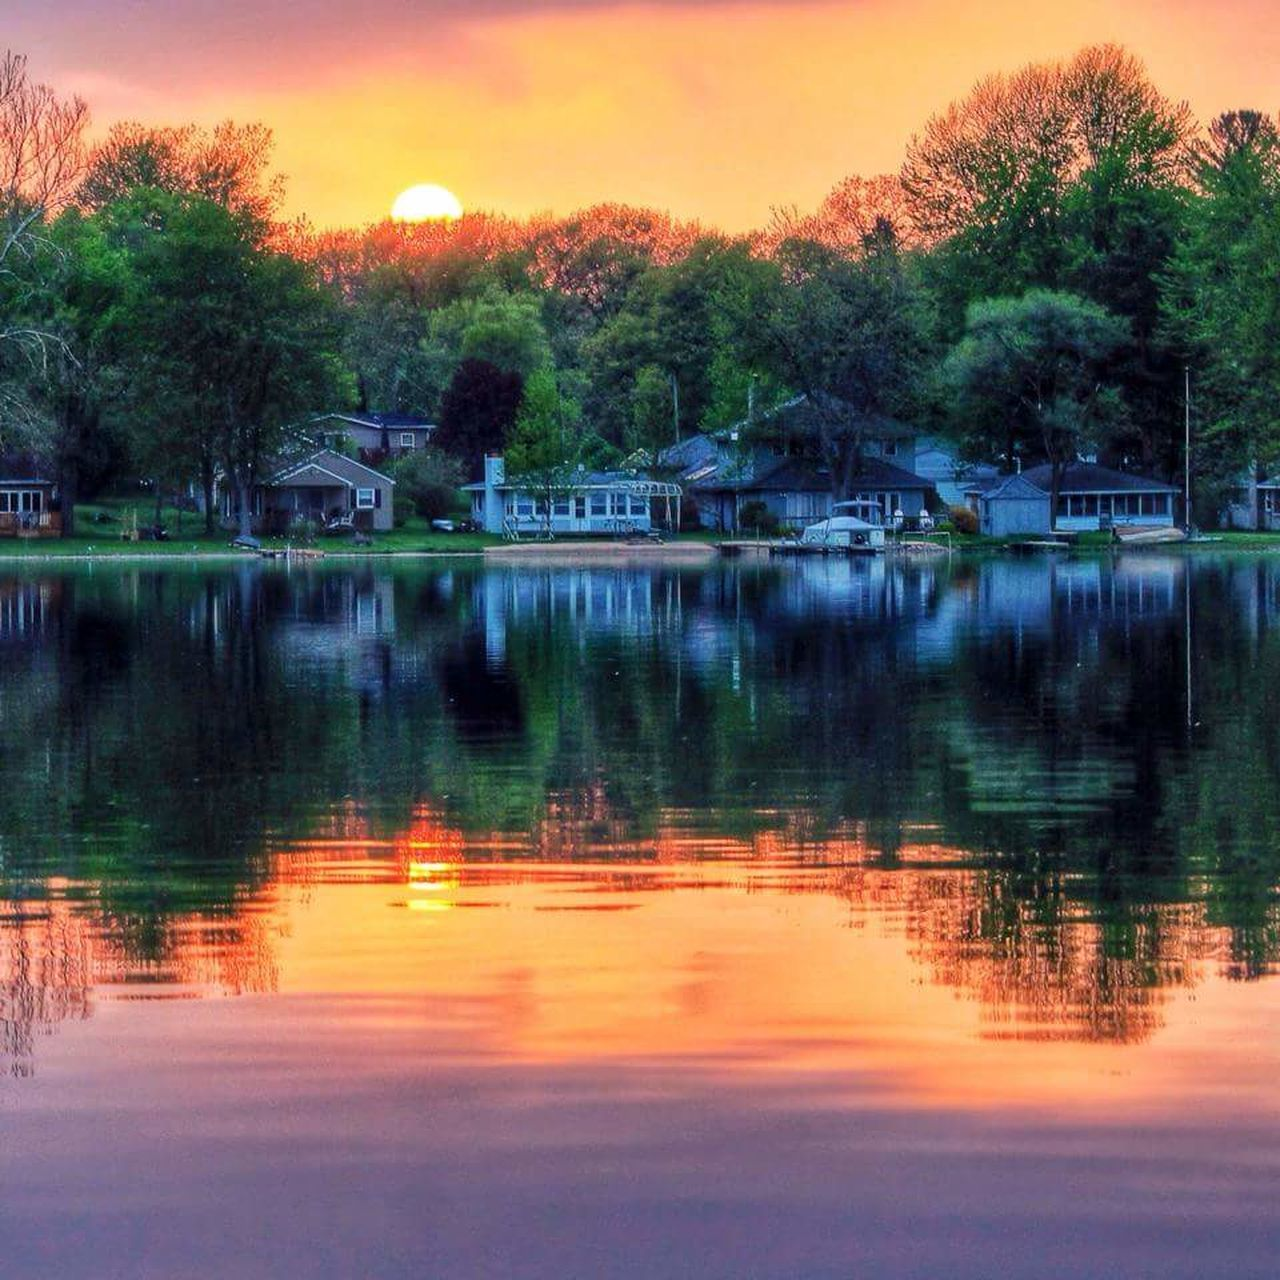 reflection, tree, sunset, water, orange color, lake, tranquil scene, outdoors, tranquility, beauty in nature, scenics, no people, nature, built structure, sky, building exterior, architecture, day